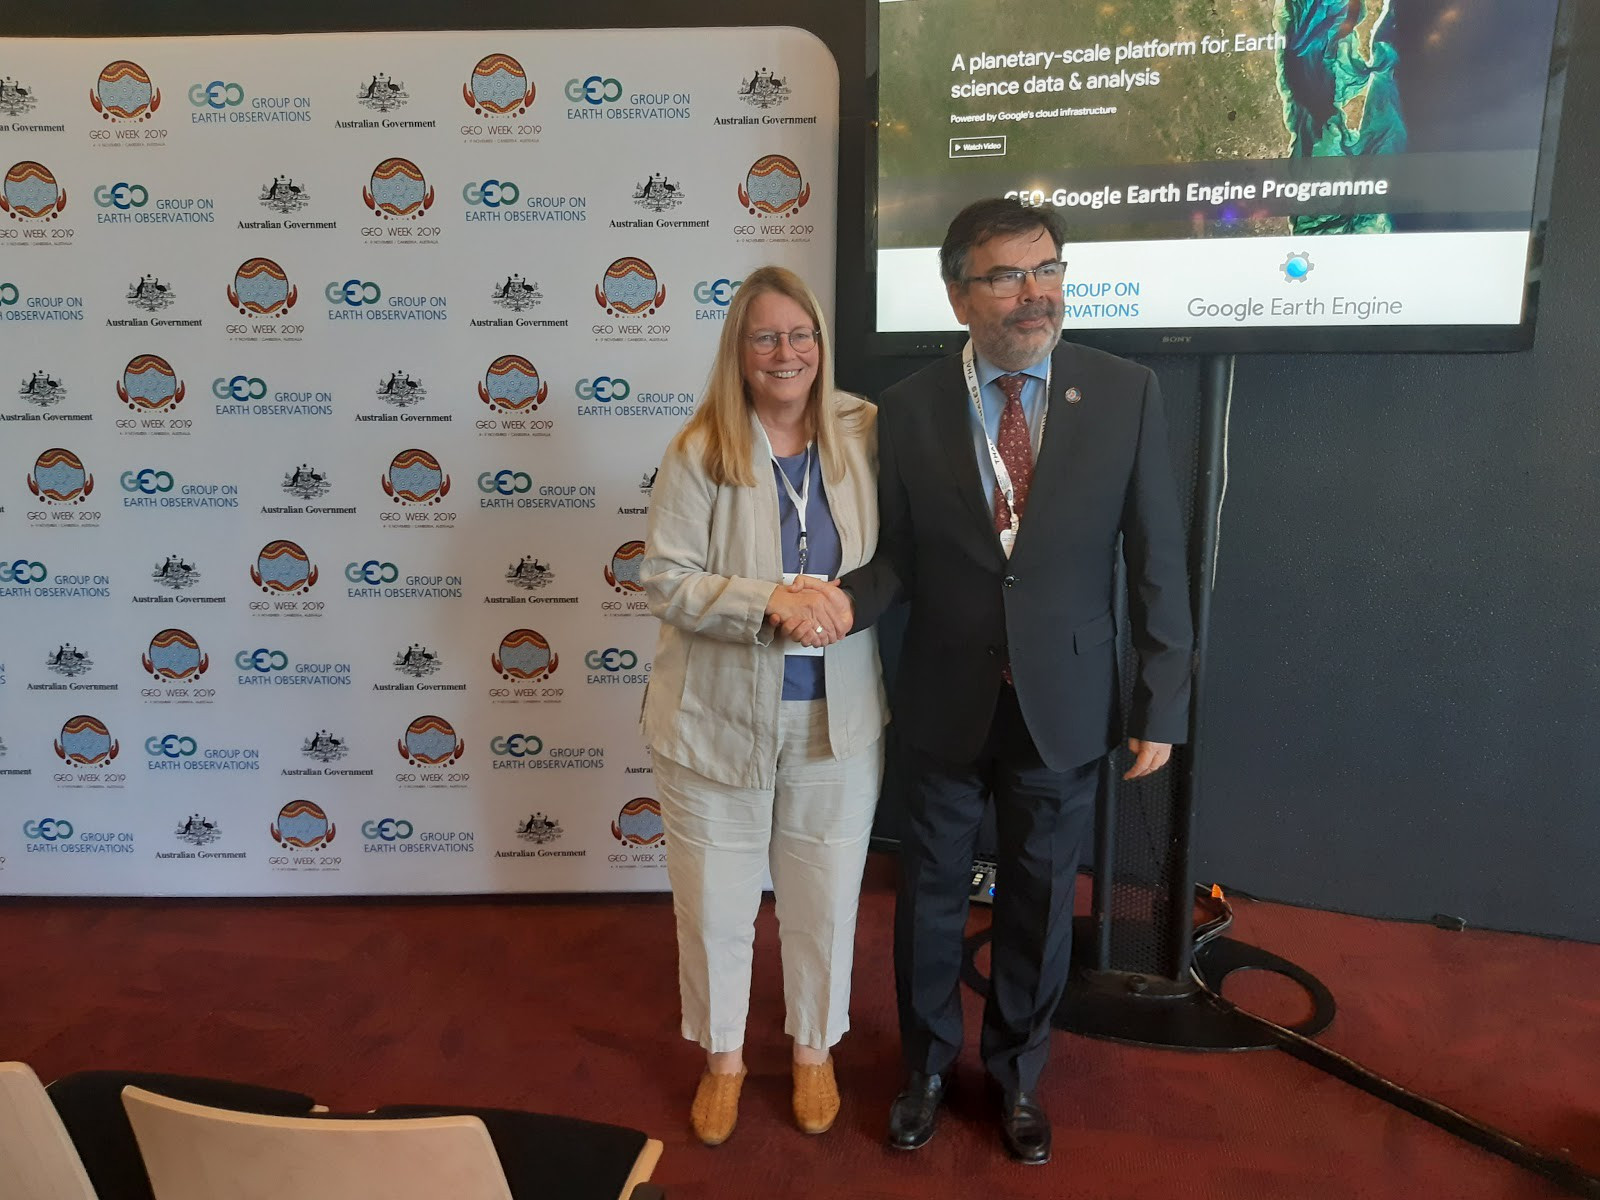 Rebecca Moore, Director of Google Earth Engine, and Gilberto Camara, Director of the Secretariat for GEO, announce the new program providing free access to Earth Engine for selected Earth observation projects during GEO Week 2019 in Australia.